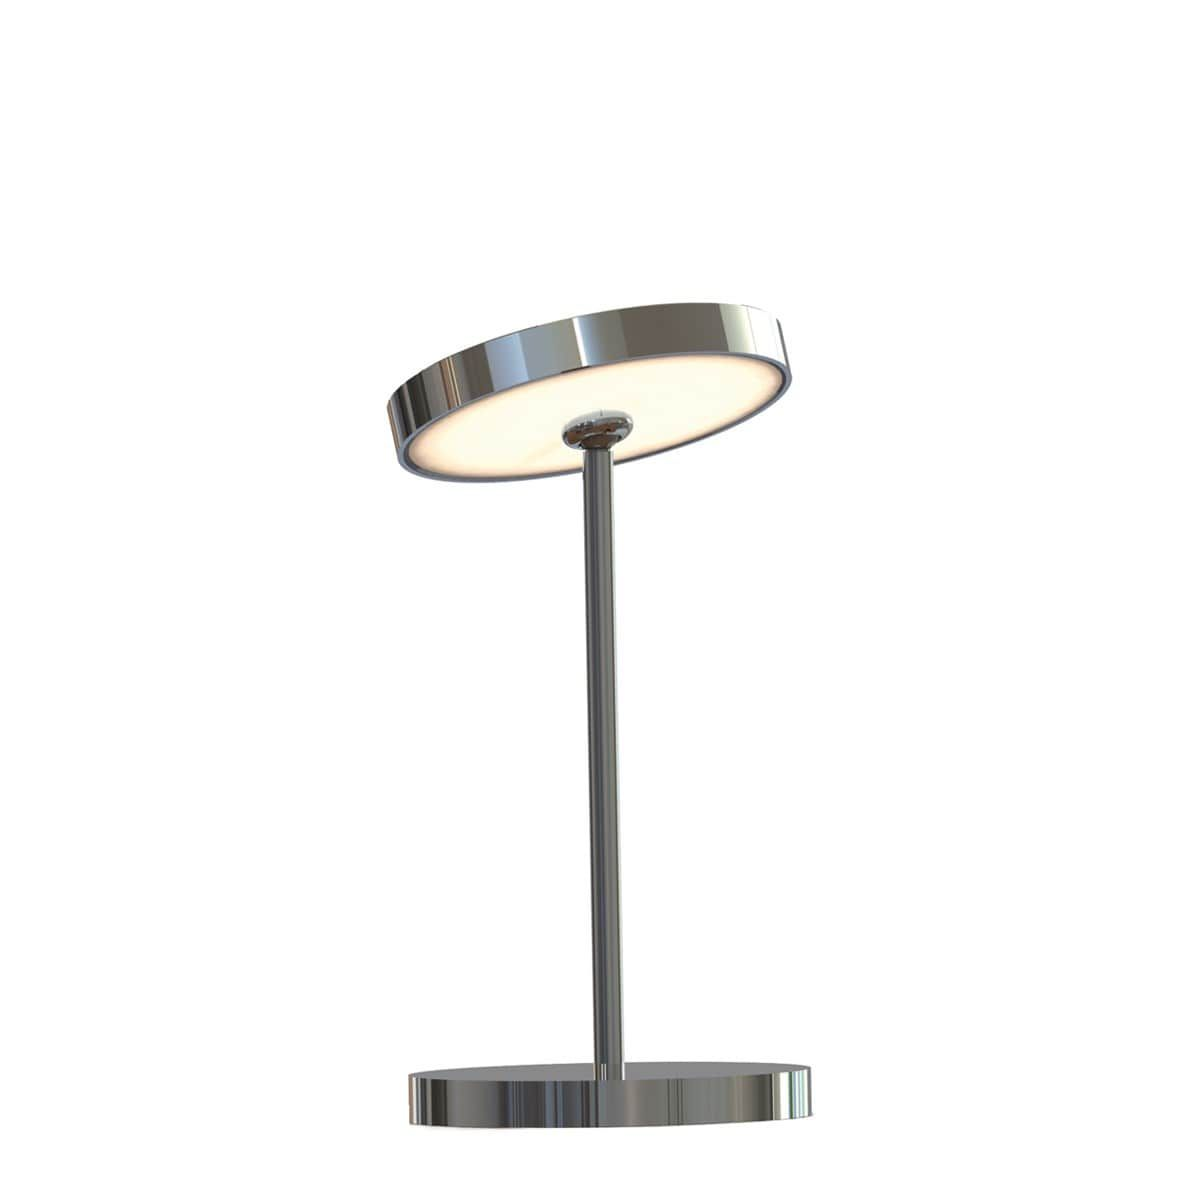 Top Light Sun Table Tischleuchte 20 O 13 Cm Lampen Landhausstil Stehlampe Holz Lampen